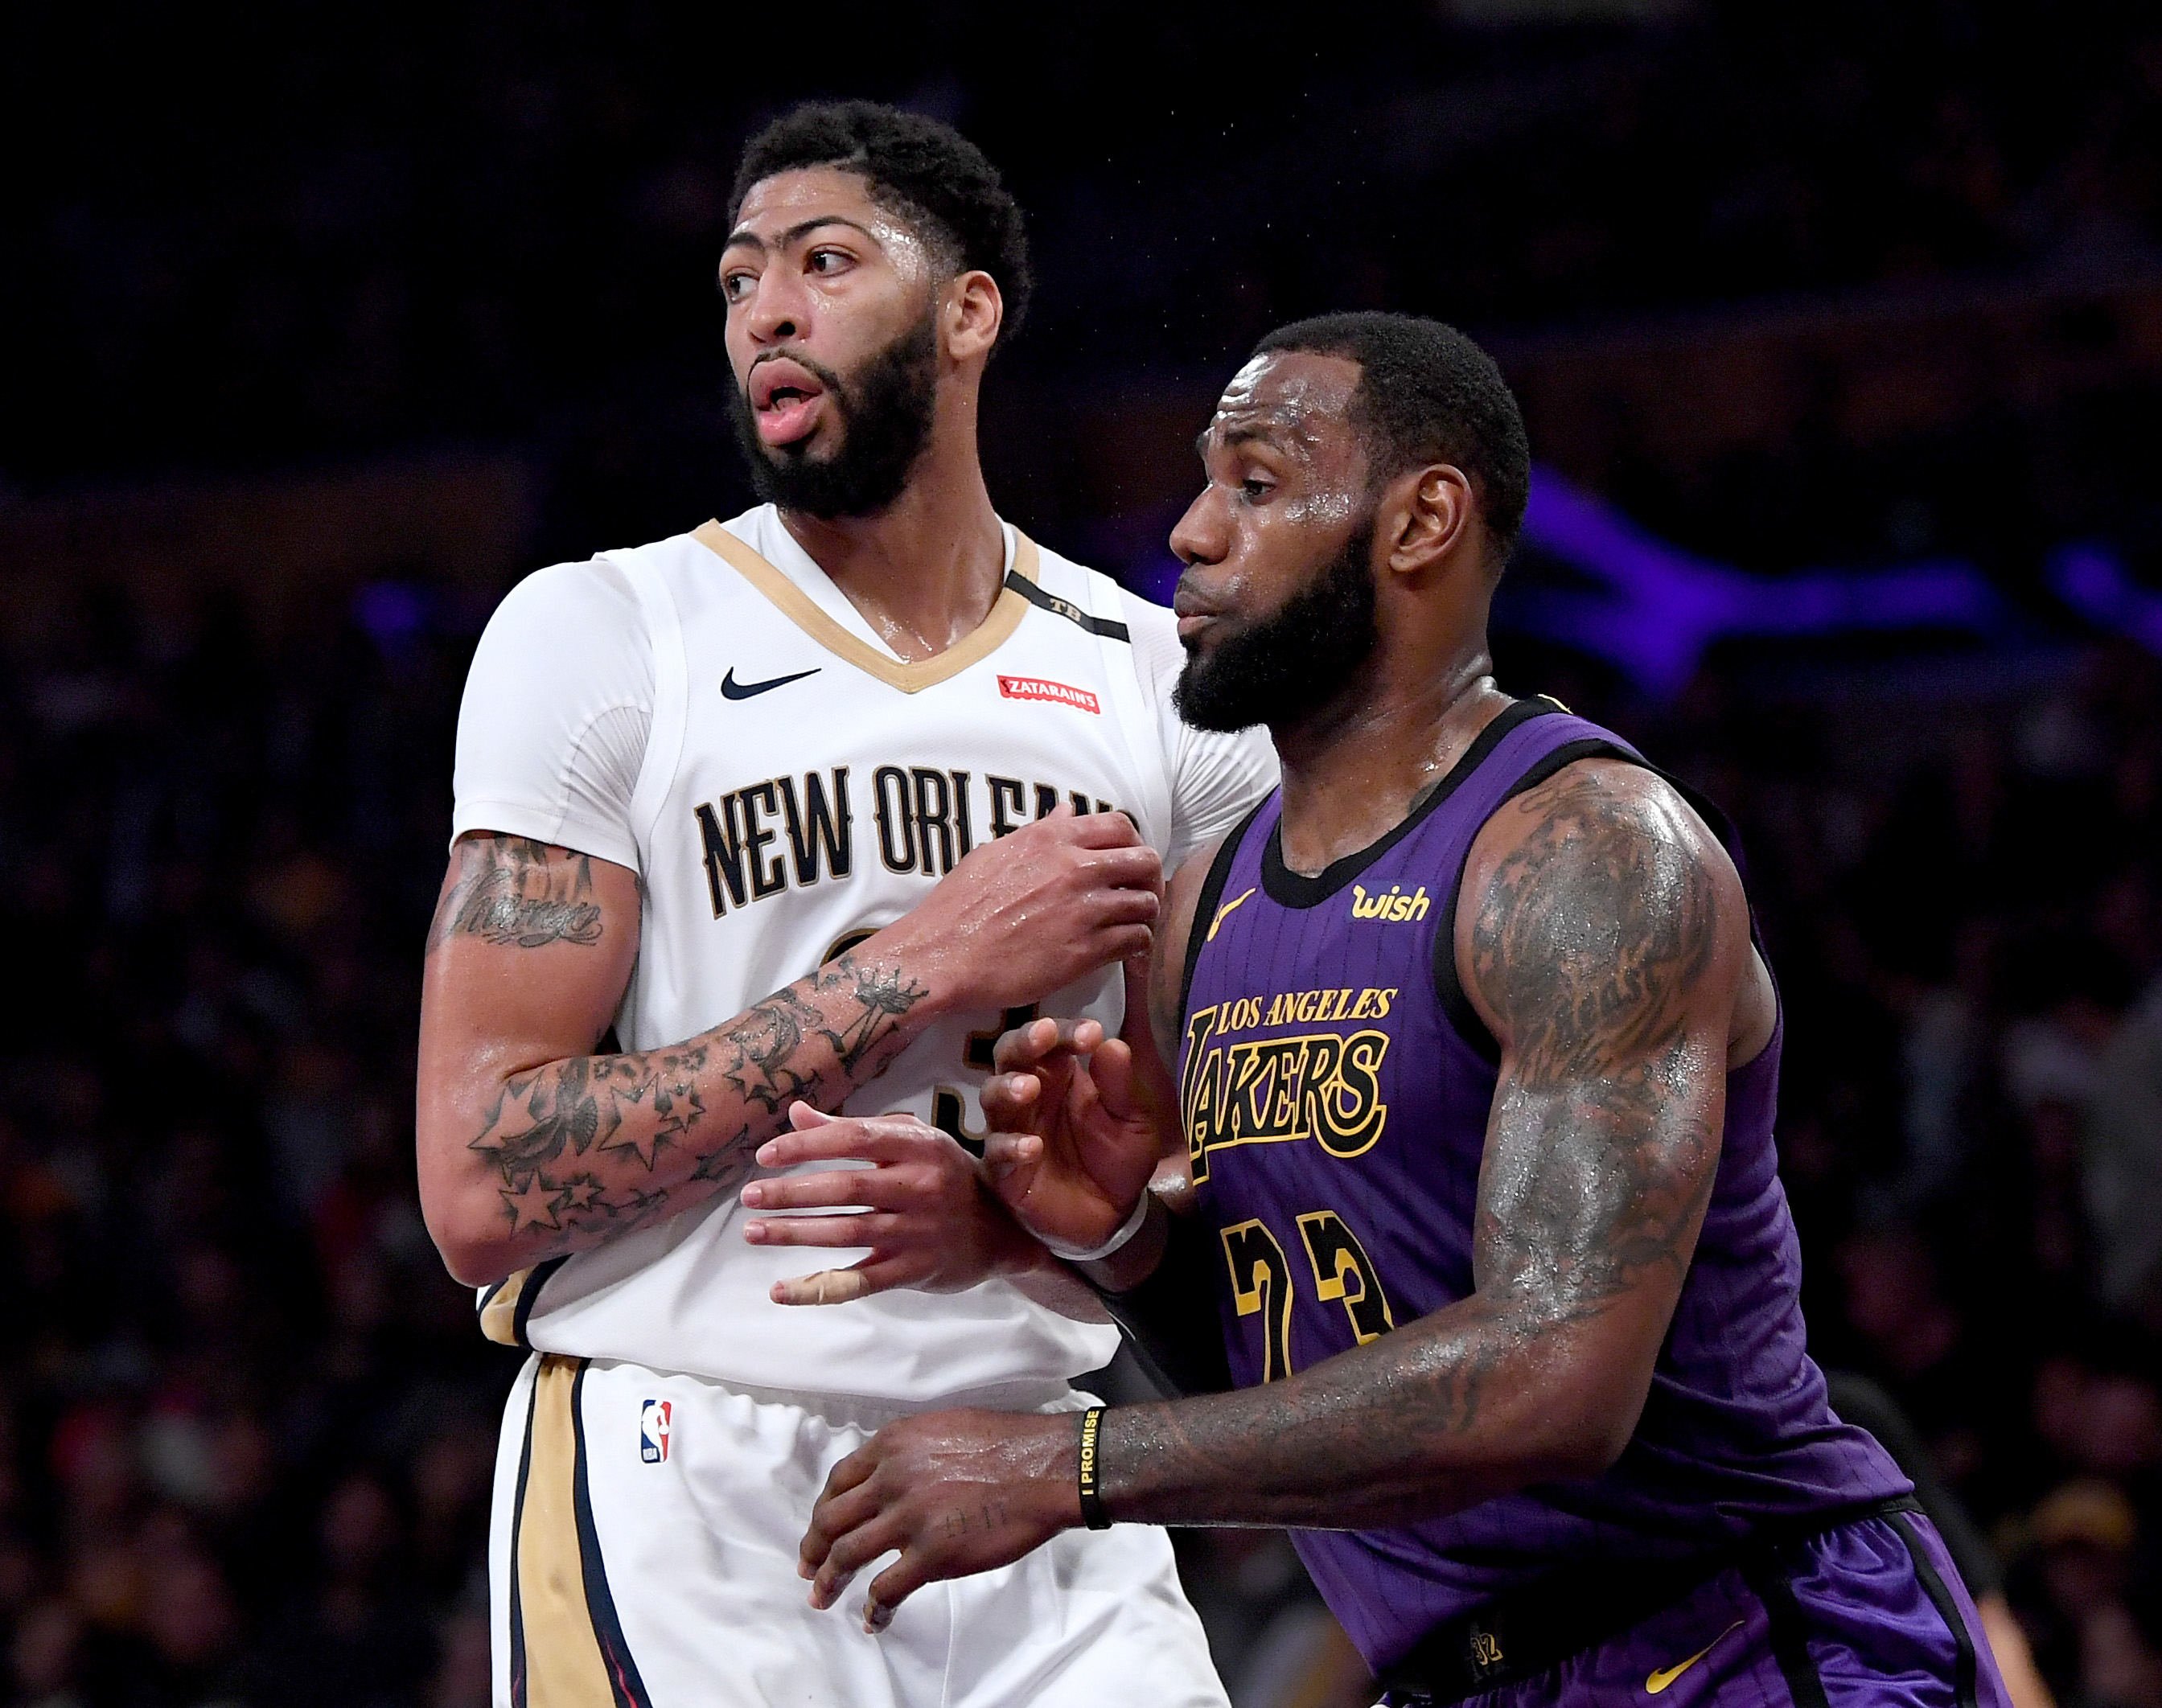 After all that, Anthony Davis was traded to the Lakers anyway